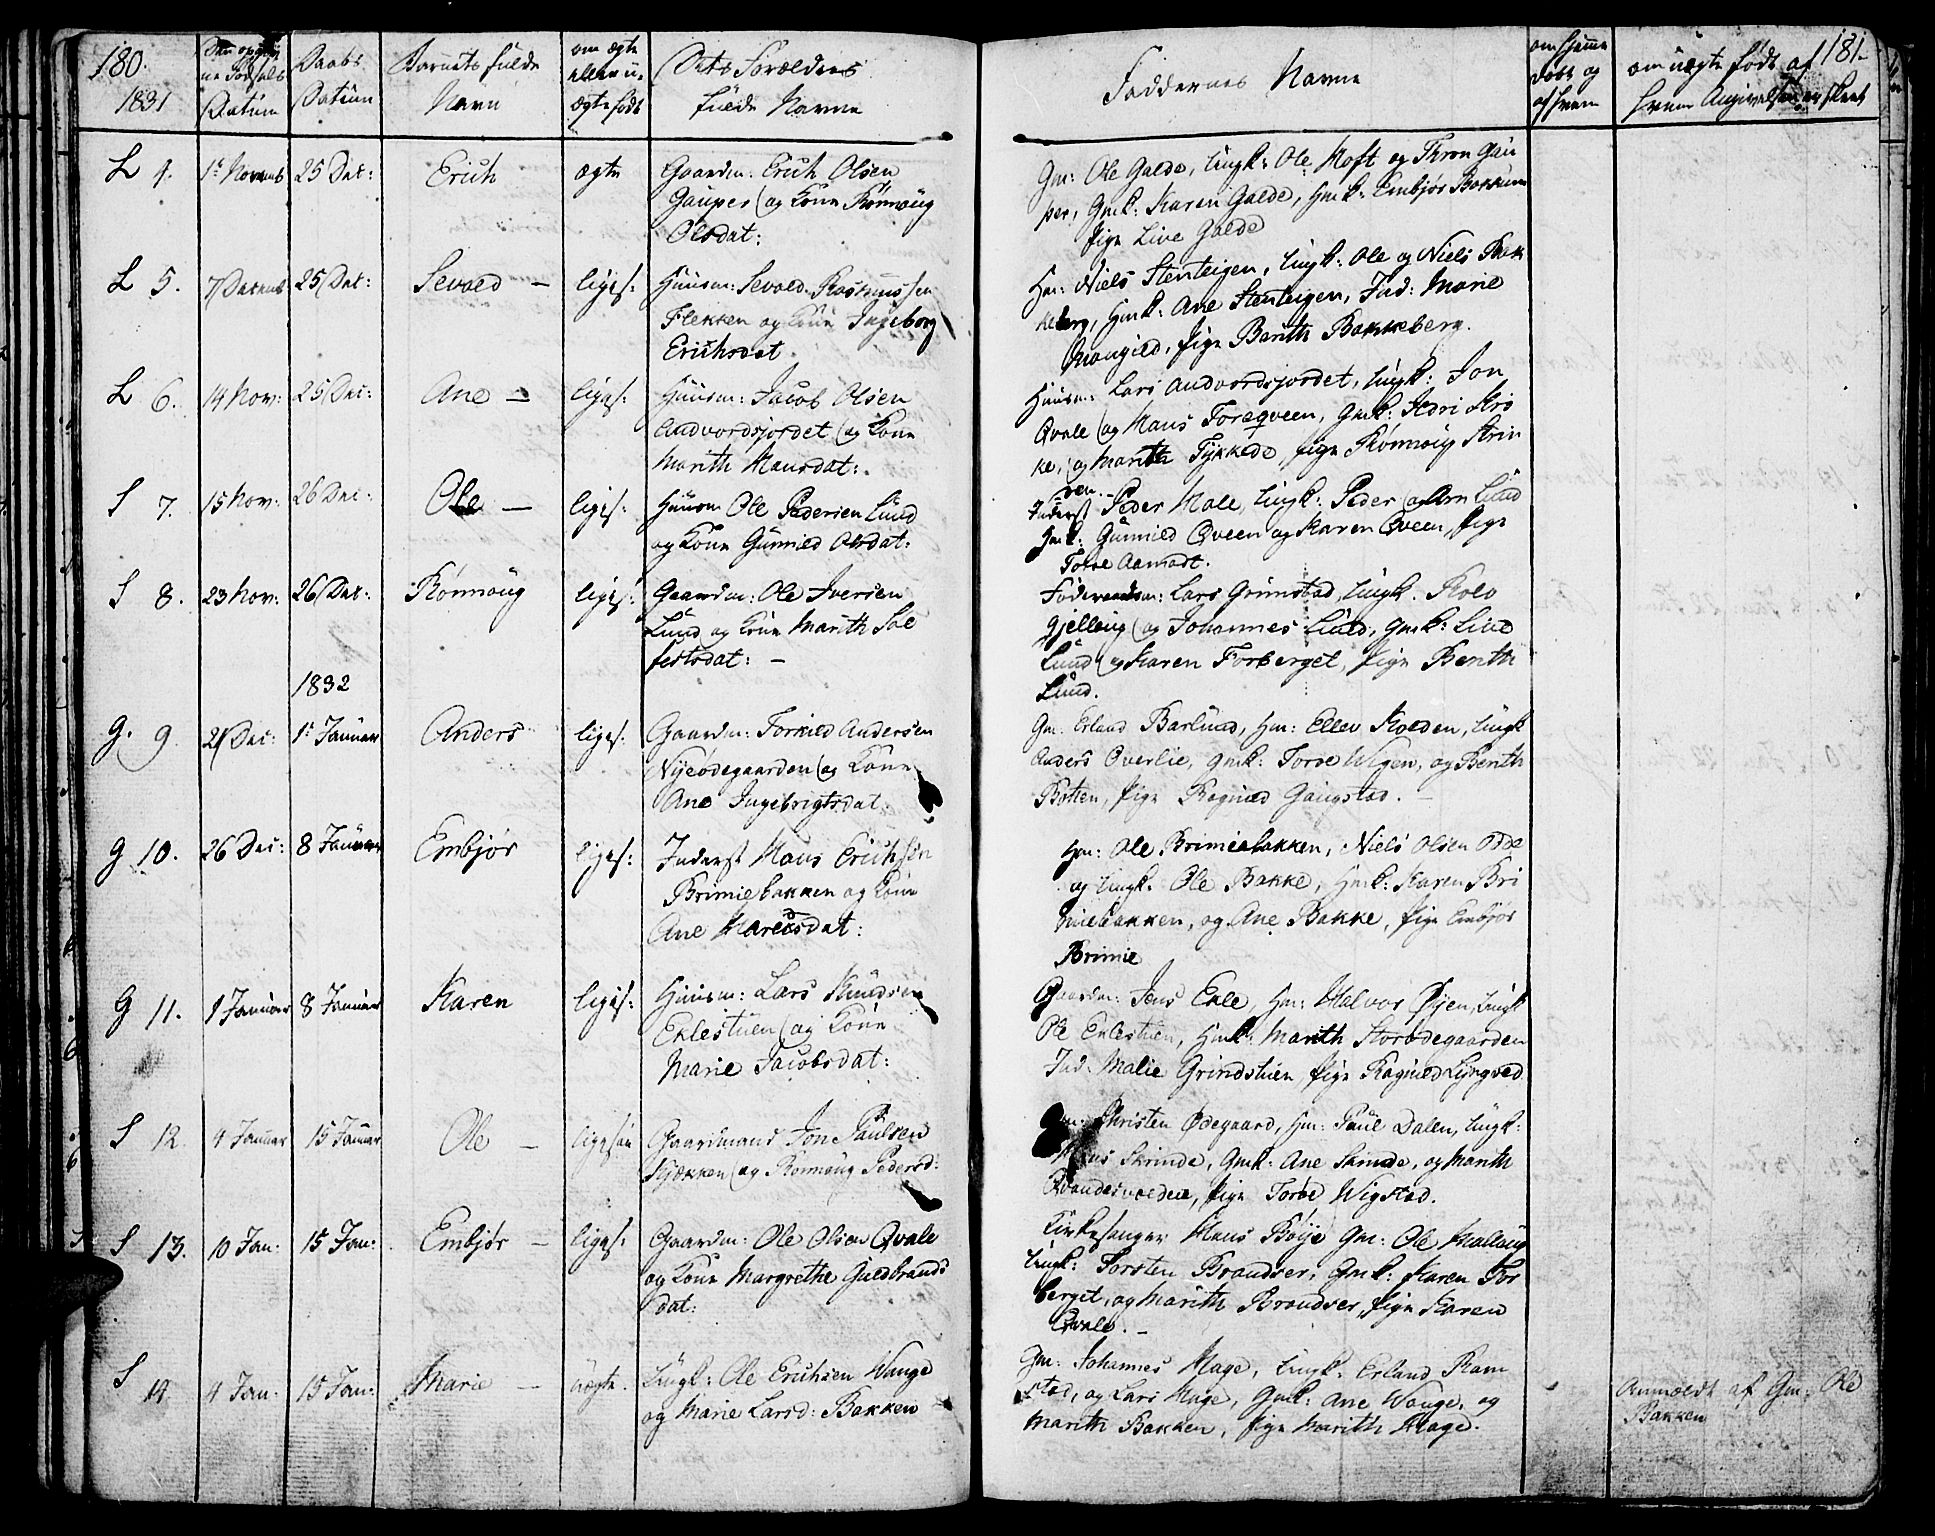 SAH, Lom prestekontor, K/L0005: Parish register (official) no. 5, 1825-1837, p. 180-181